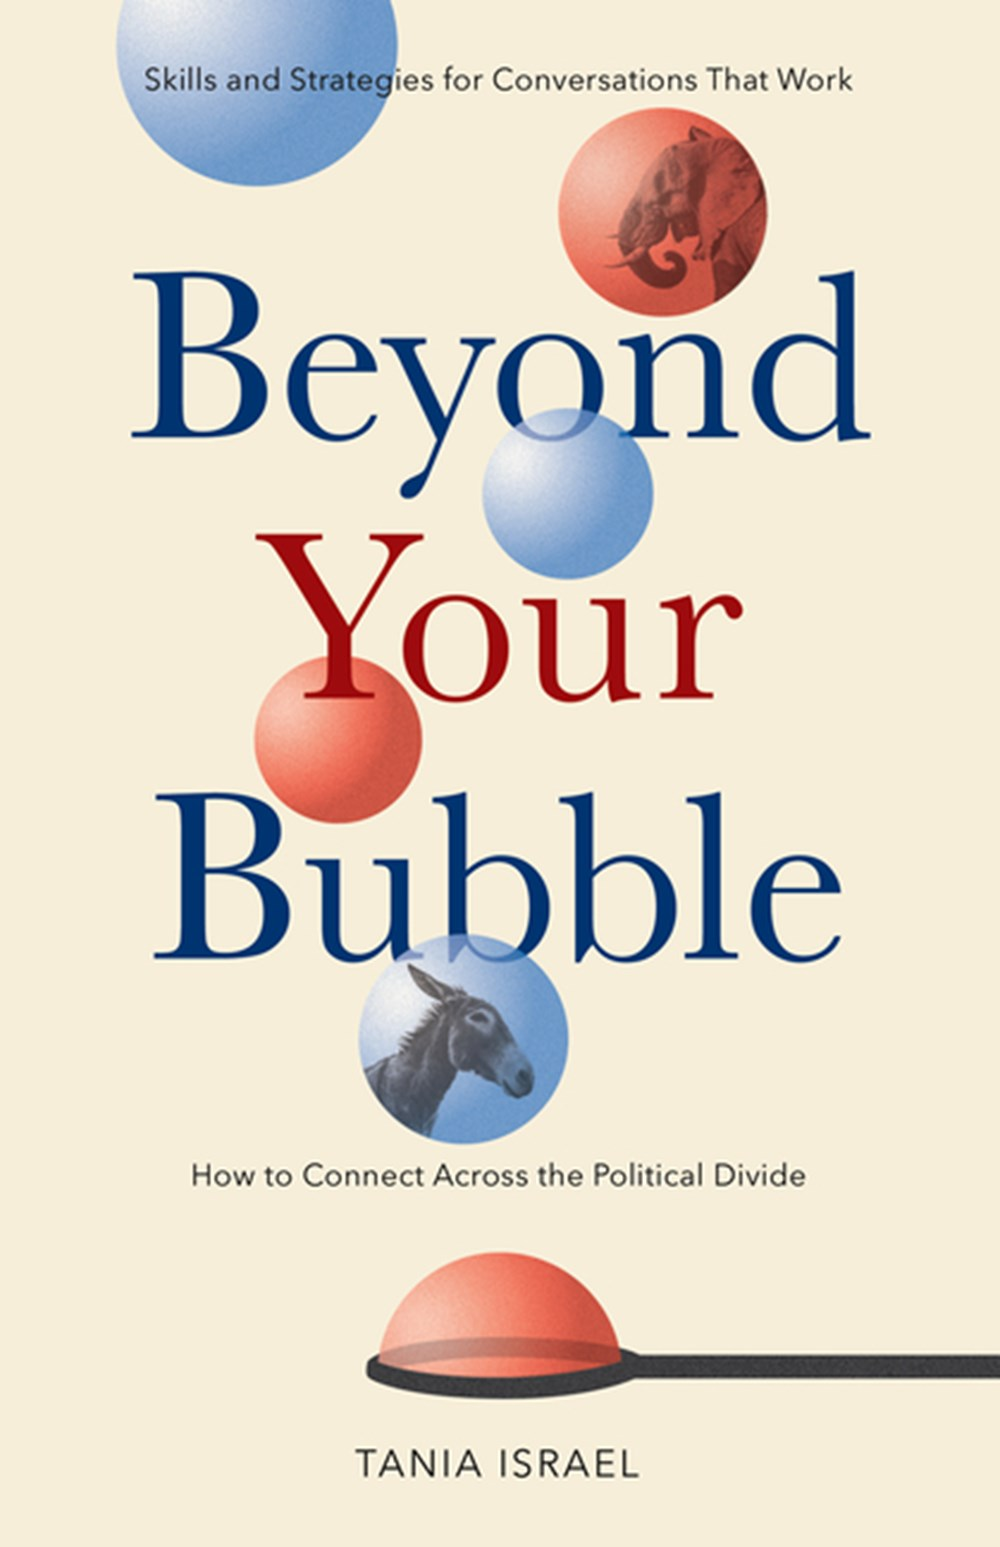 Beyond Your Bubble How to Connect Across the Political Divide, Skills and Strategies for Conversatio